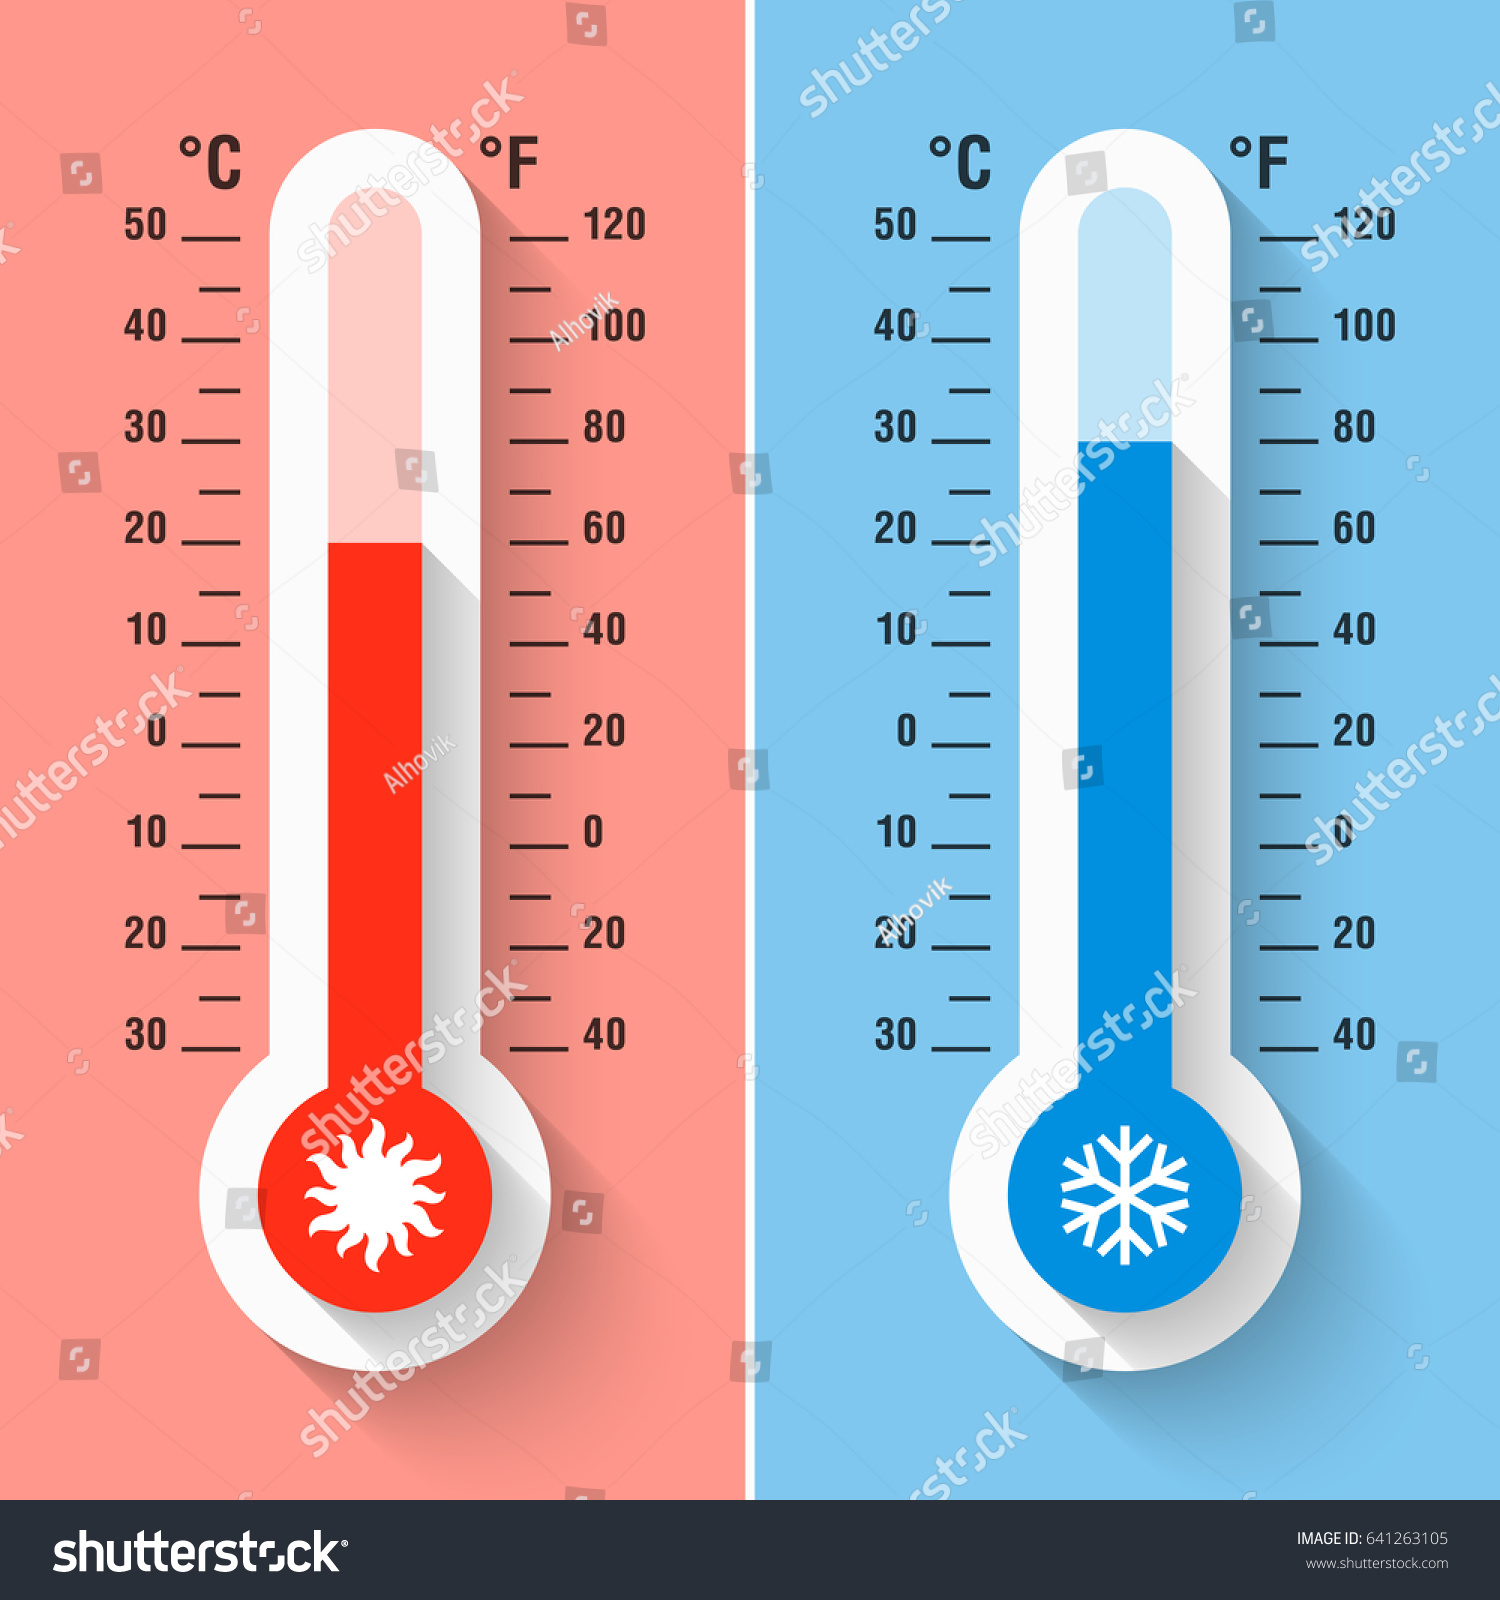 Celsius Fahrenheit Thermometers Measuring Heat Cold Stock